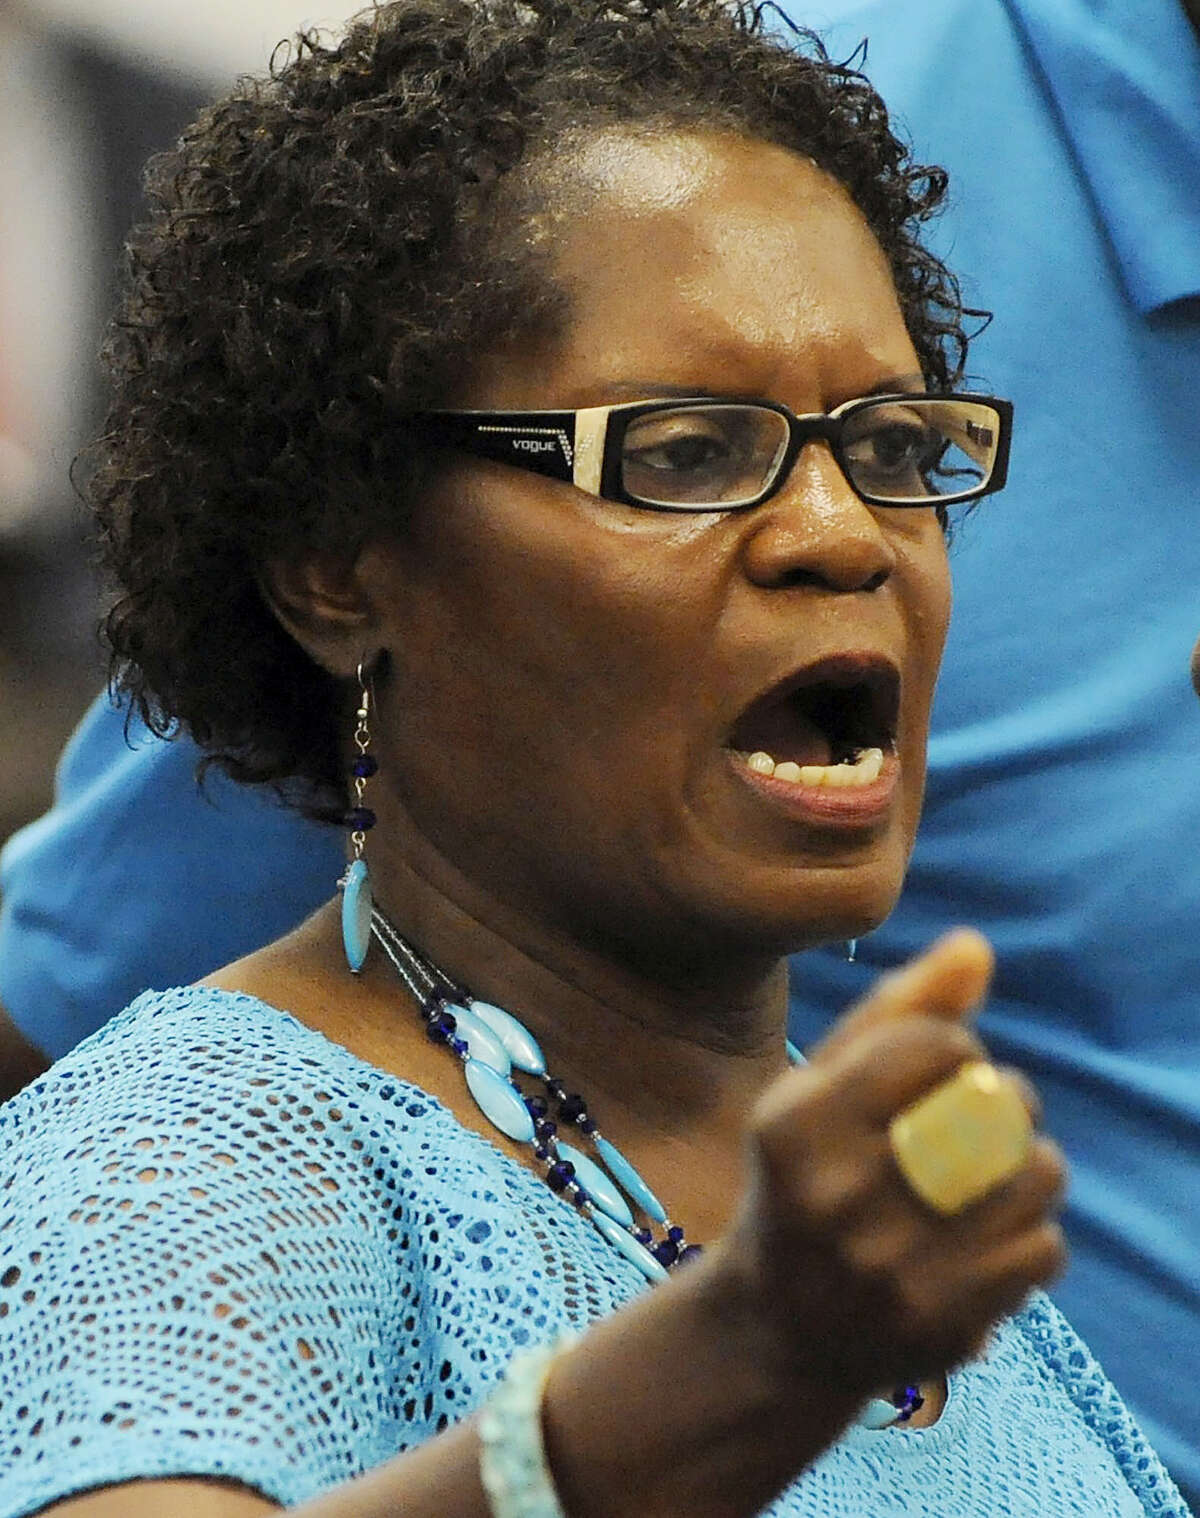 Church bombing survivor Sarah Collins Rudolph speaks to Alabama's parole board in opposition of an early release for convicted bomber Thomas Blanton Jr. on Wednesday, Aug. 3, 2016. Rudolph, who was badly injured in the bombing, which killed her sister Addie Mae Collins, urged the board to keep Blanton behind bars.